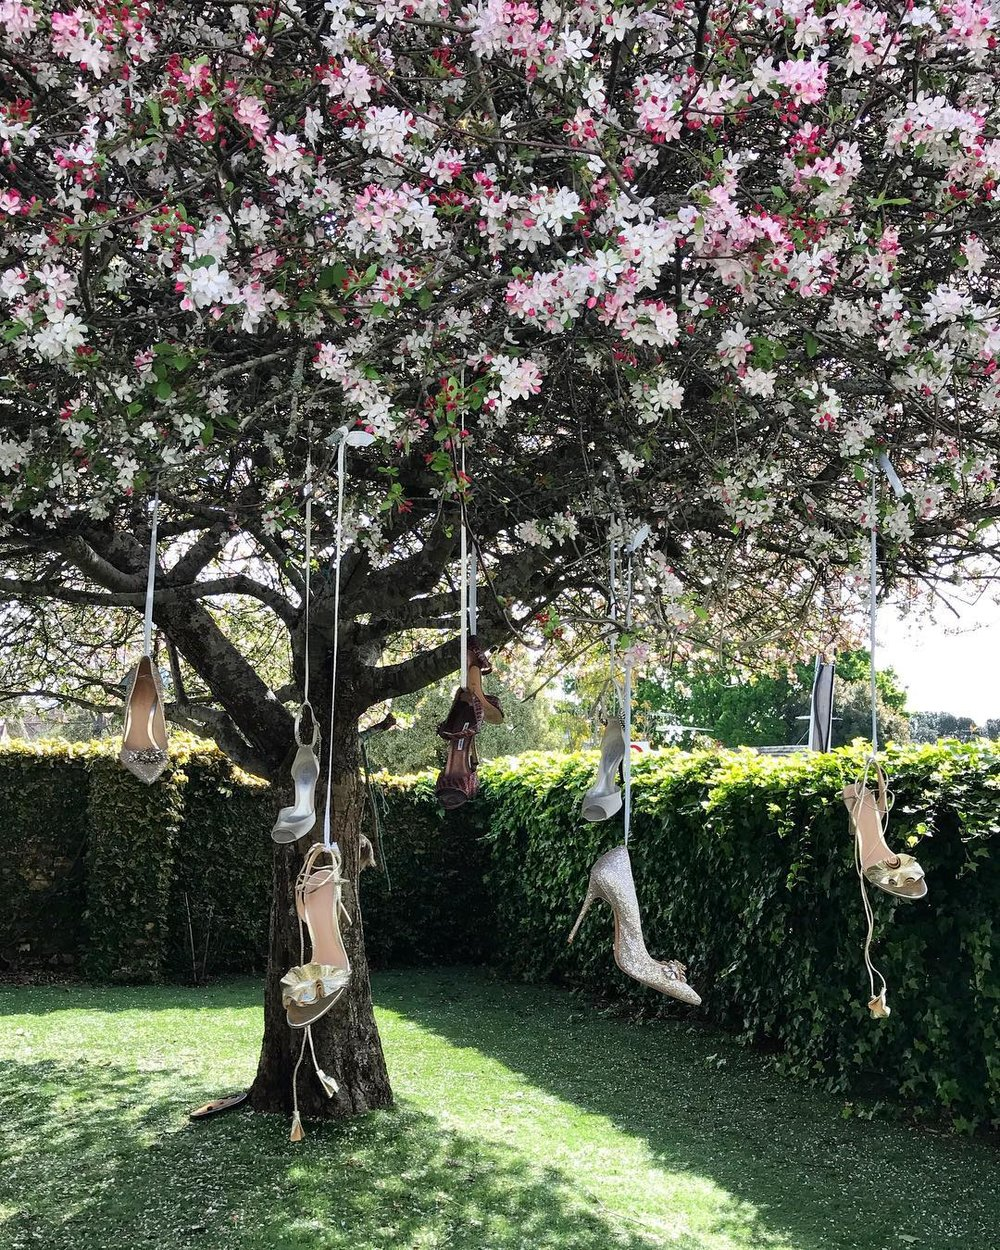 Grove's favourite shoes in her favourite tree. Image Clare Grove.